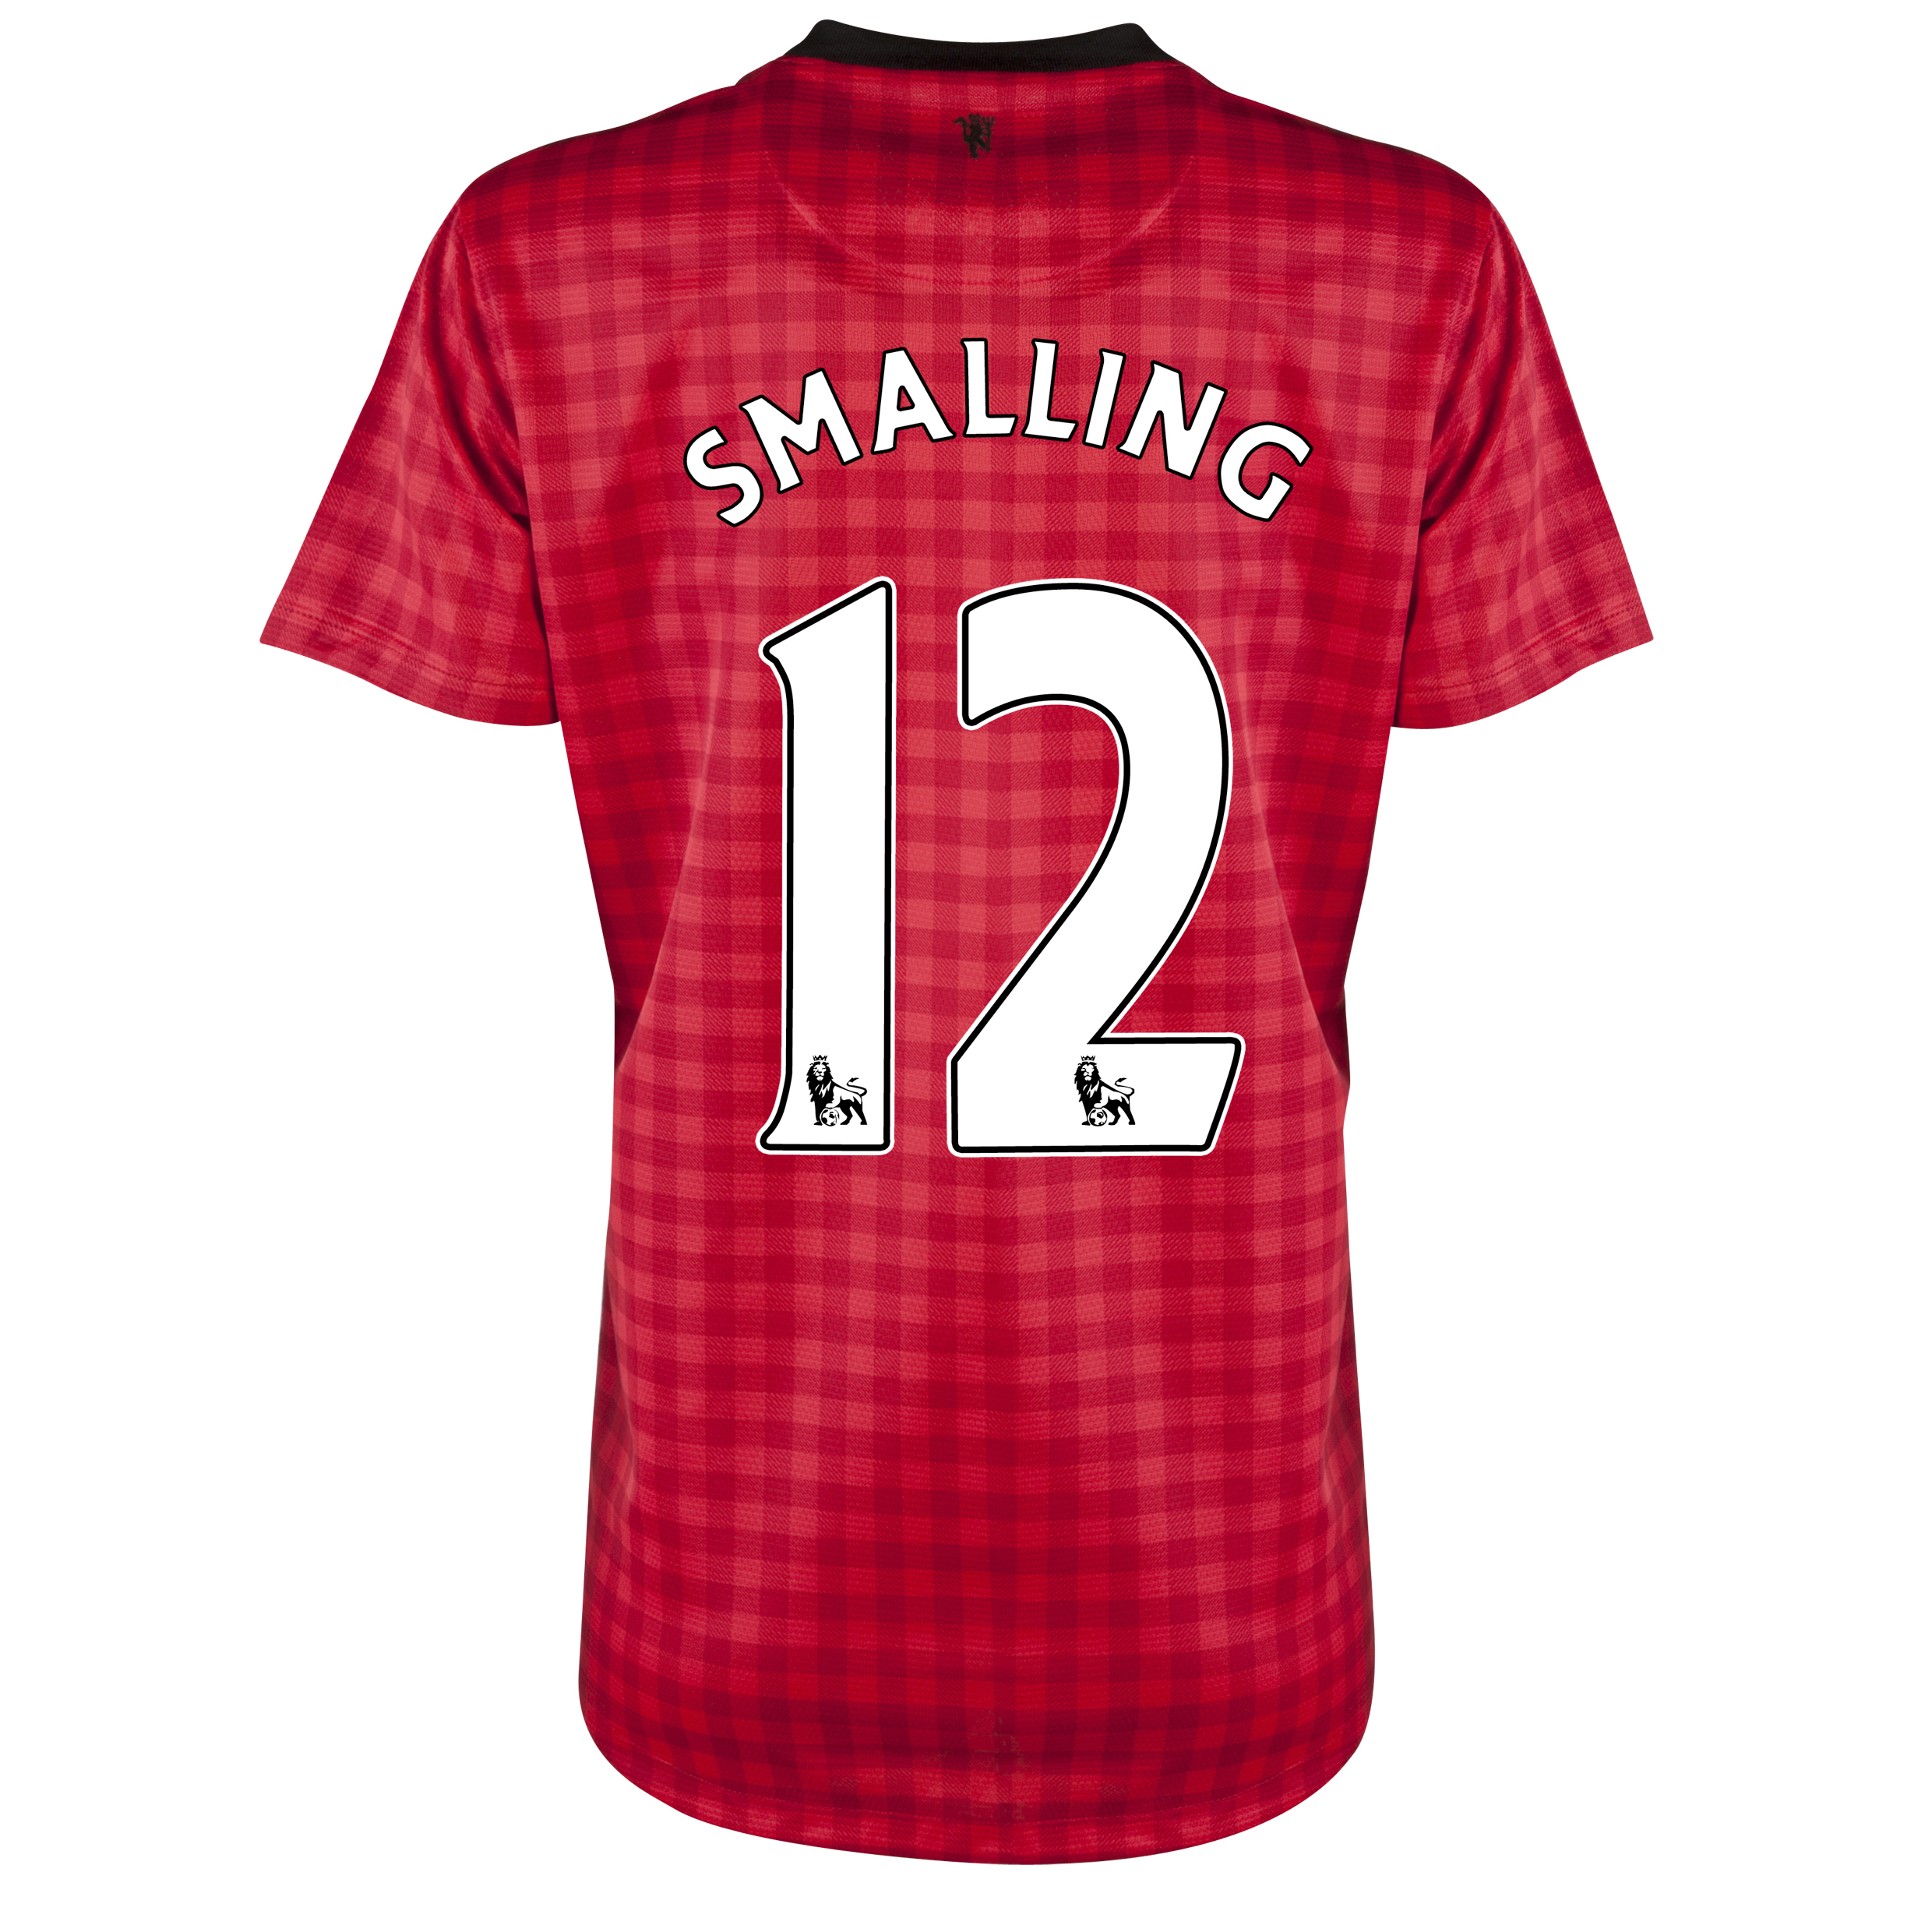 Manchester United Home Shirt 2012/13 - Womens with Smalling 12 printing